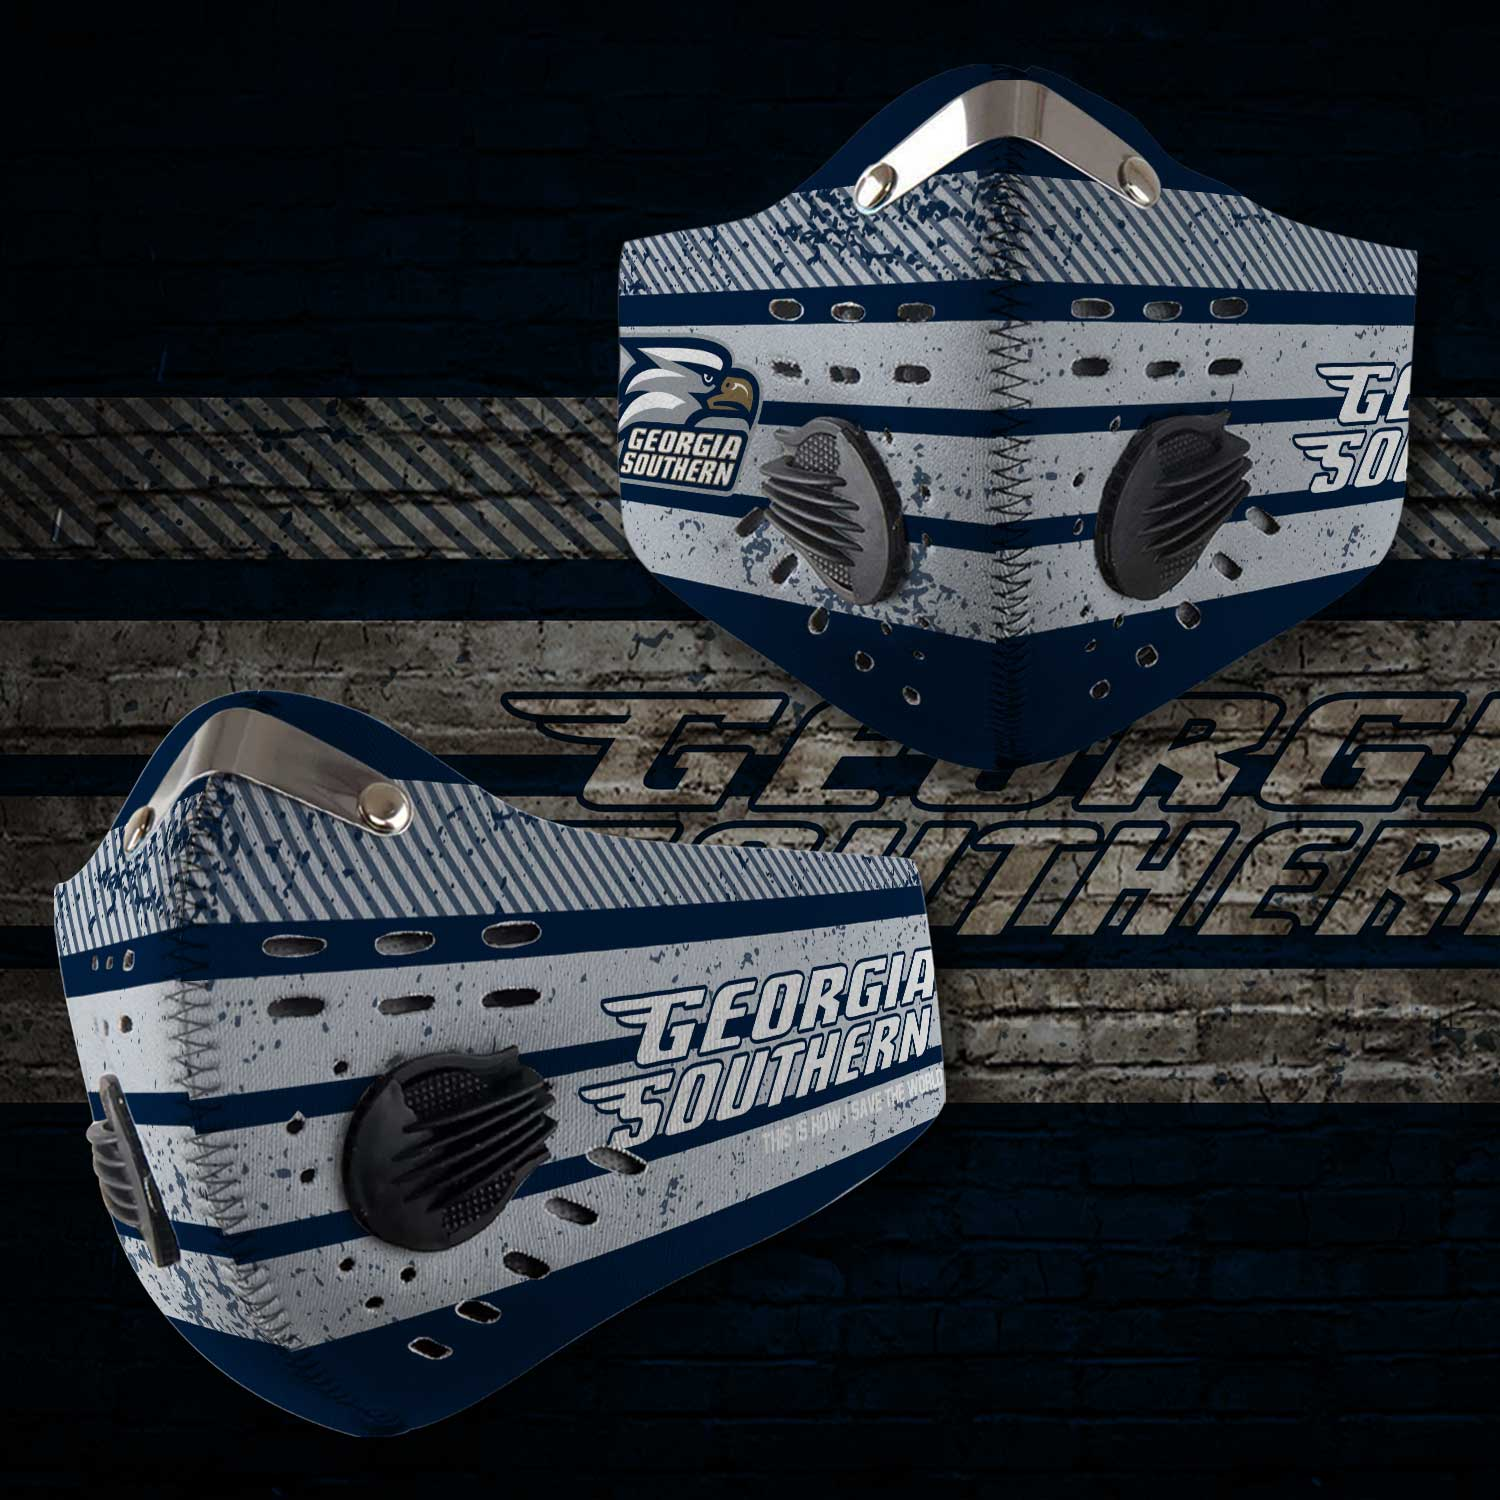 Georgia southern eagles football this is how i save the world face mask 1